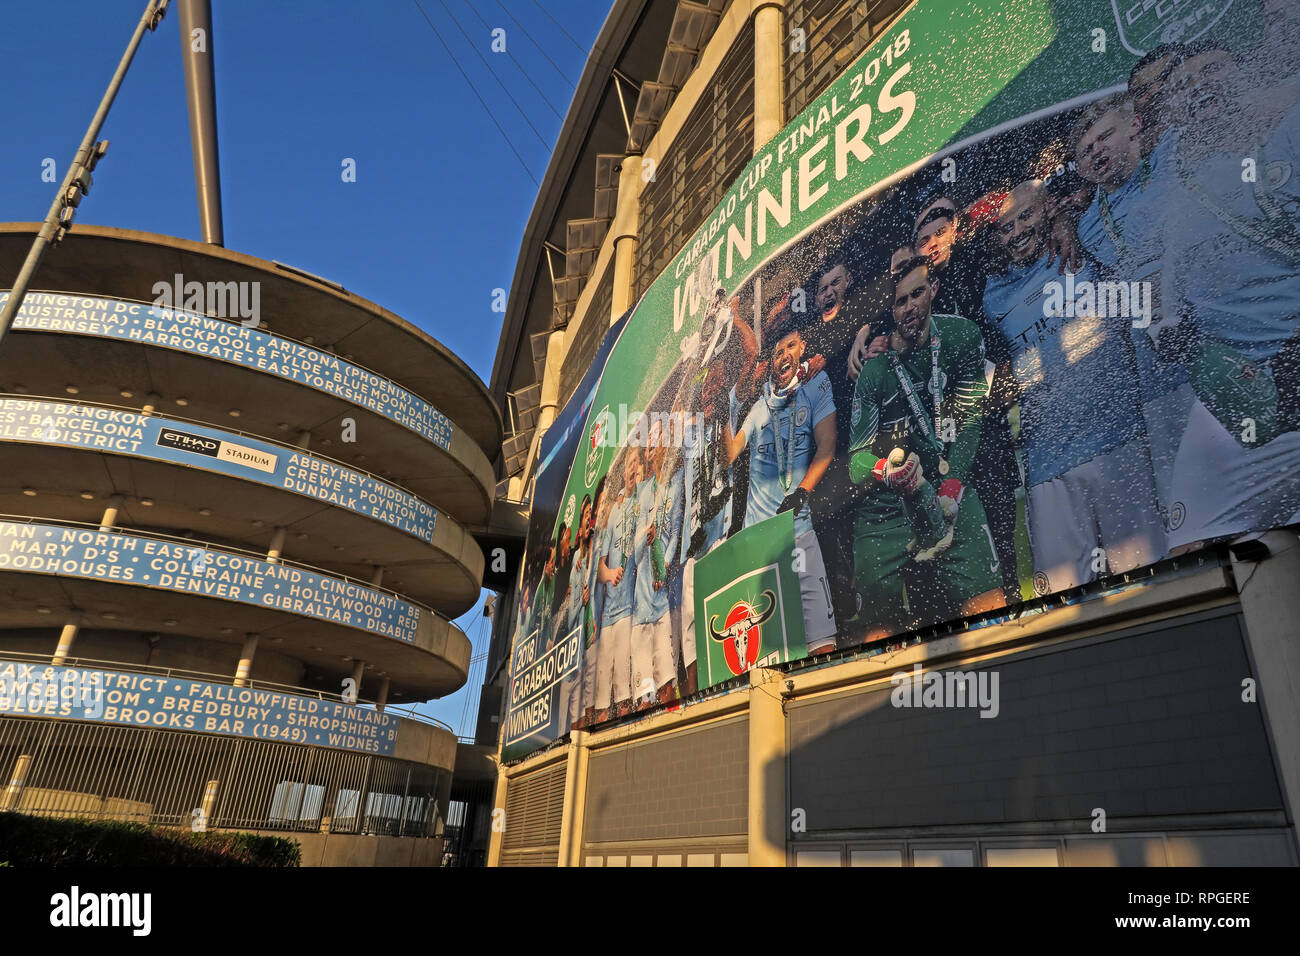 Manchester City Eitihad stadium, MCFC Caribou Cup Winners 2018, 2019, North West England, UK - Stock Image